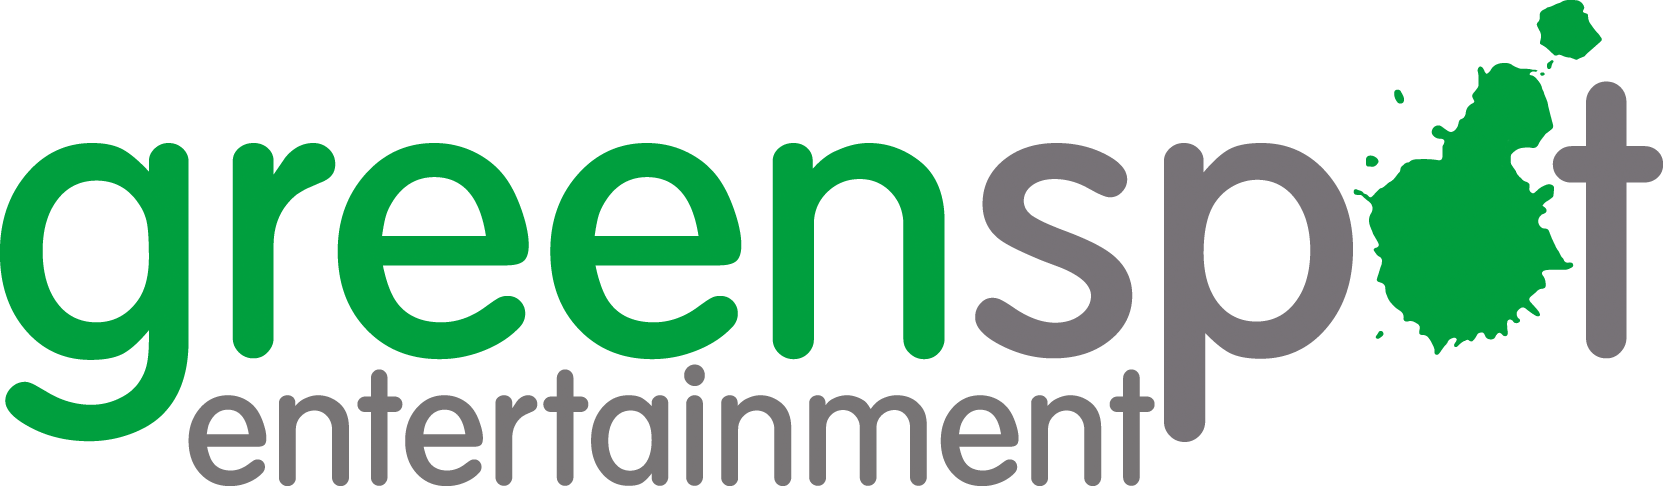 greenspot entertainment